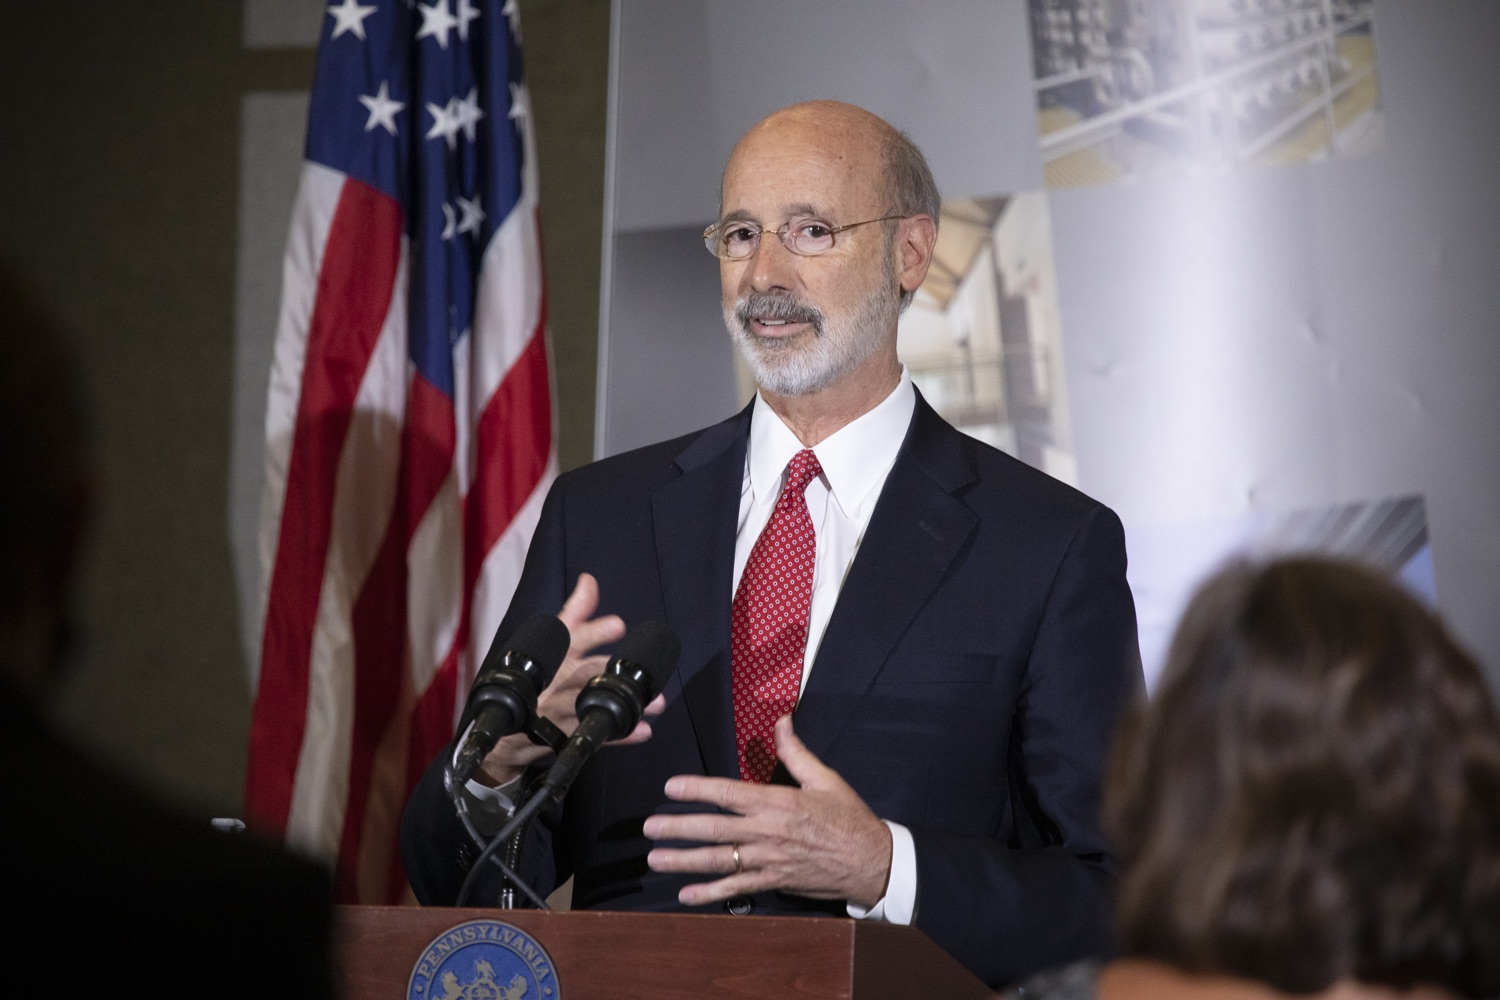 "<a href=""https://filesource.wostreaming.net/commonwealthofpa/photo/18250_gov_covidFunding_dz_008.jpg"" target=""_blank"">⇣ Download Photo<br></a>Pennsylvania Governor Tom Wolf speaking to the press.  As small businesses continue to feel an economic impact of the COVID-19 public health crisis, Governor Tom Wolf today called on the General Assembly to provide additional funding to support these businesses. The governor was joined by the York County Economic Alliance, local elected officials and business advocates.  York, PA  September 10, 2020"